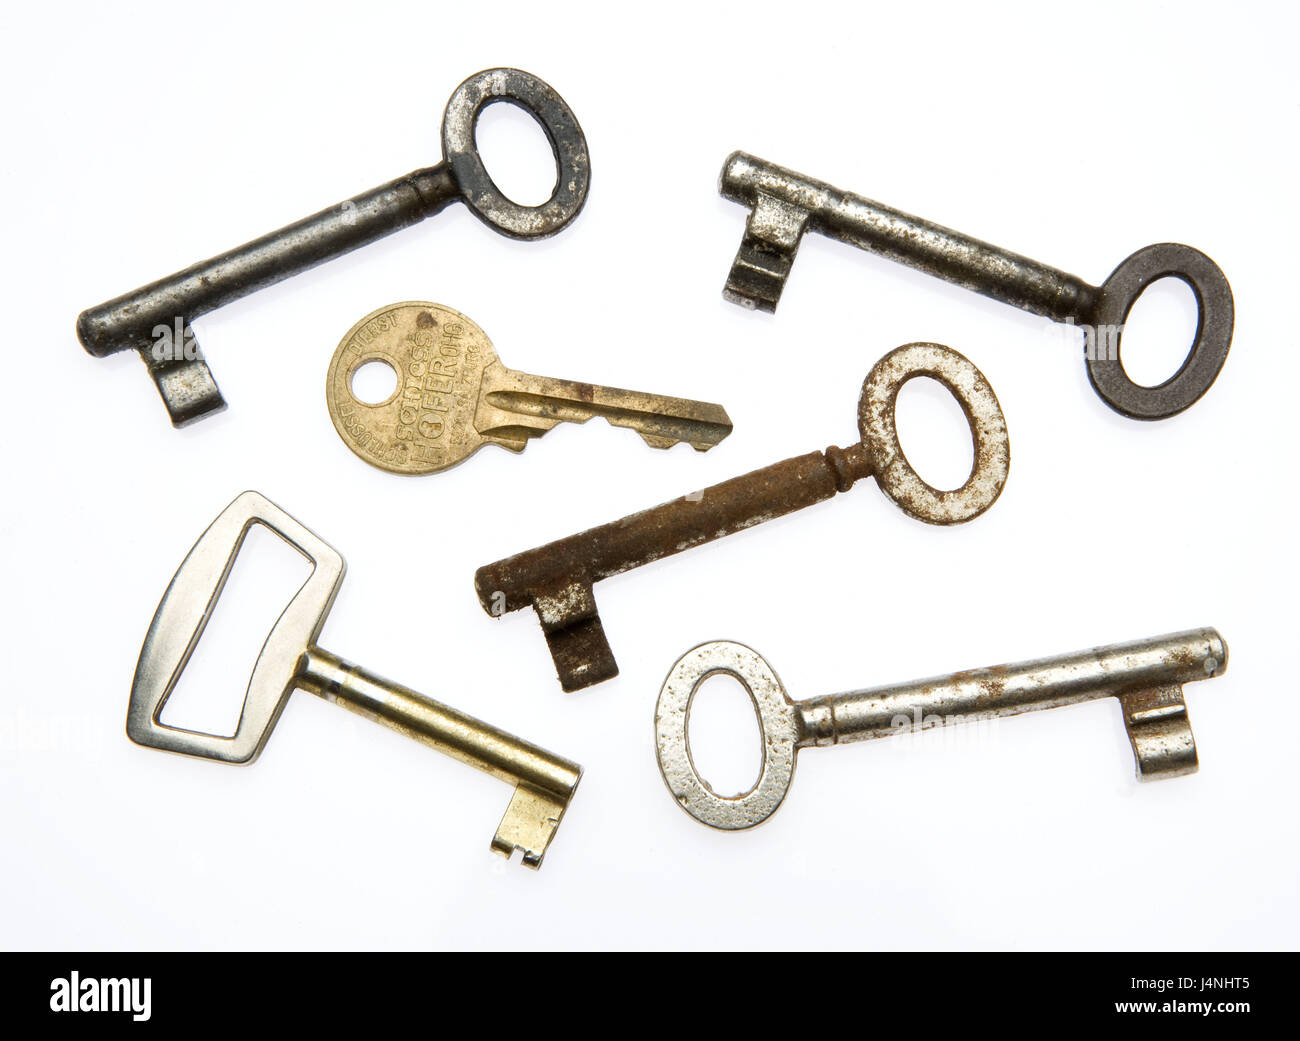 Keys, old, different, beard keys, metal keys, rusty, use tracks, icon, lock, lock up, unlock, open, seal, security, - Stock Image